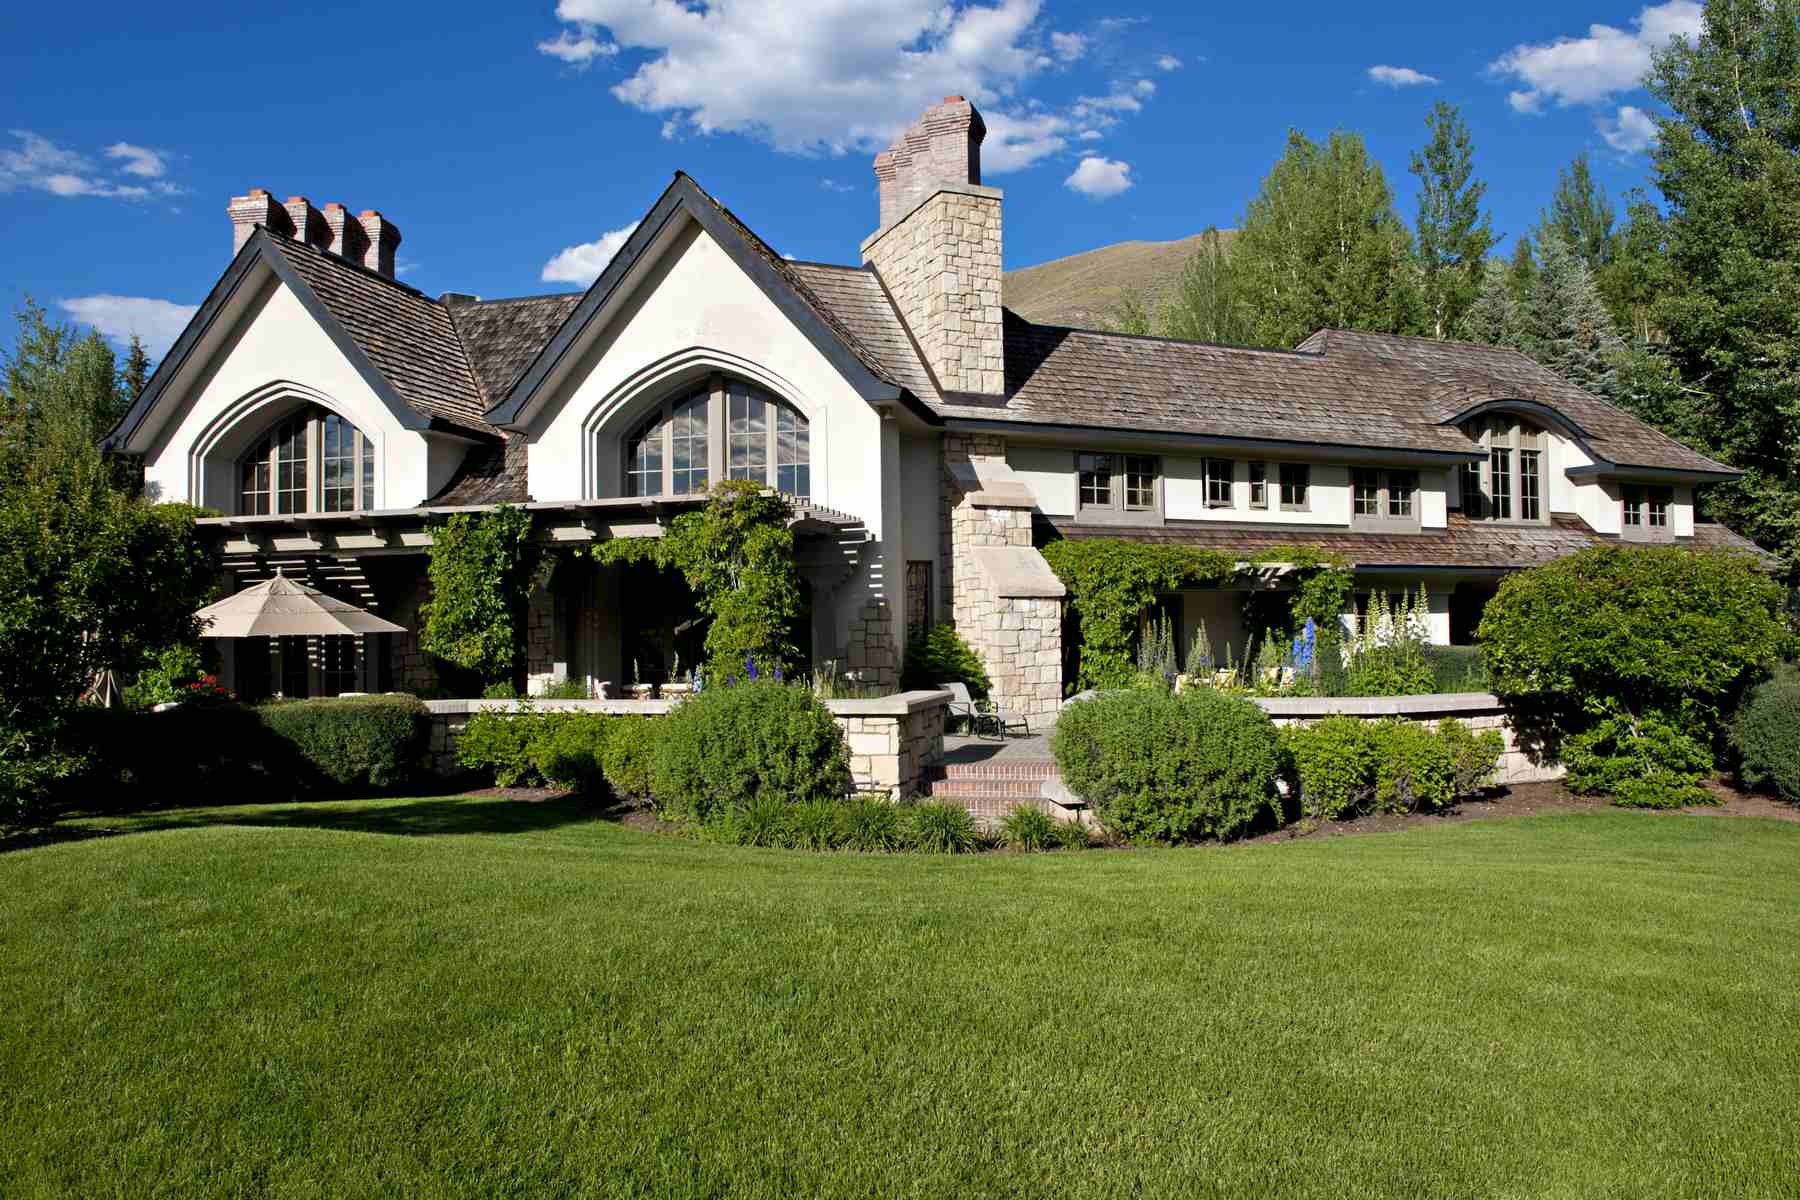 Single Family Home for Sale at Elegant English Country Manor 101 Wedeln Sun Valley, Idaho, 83340 United States